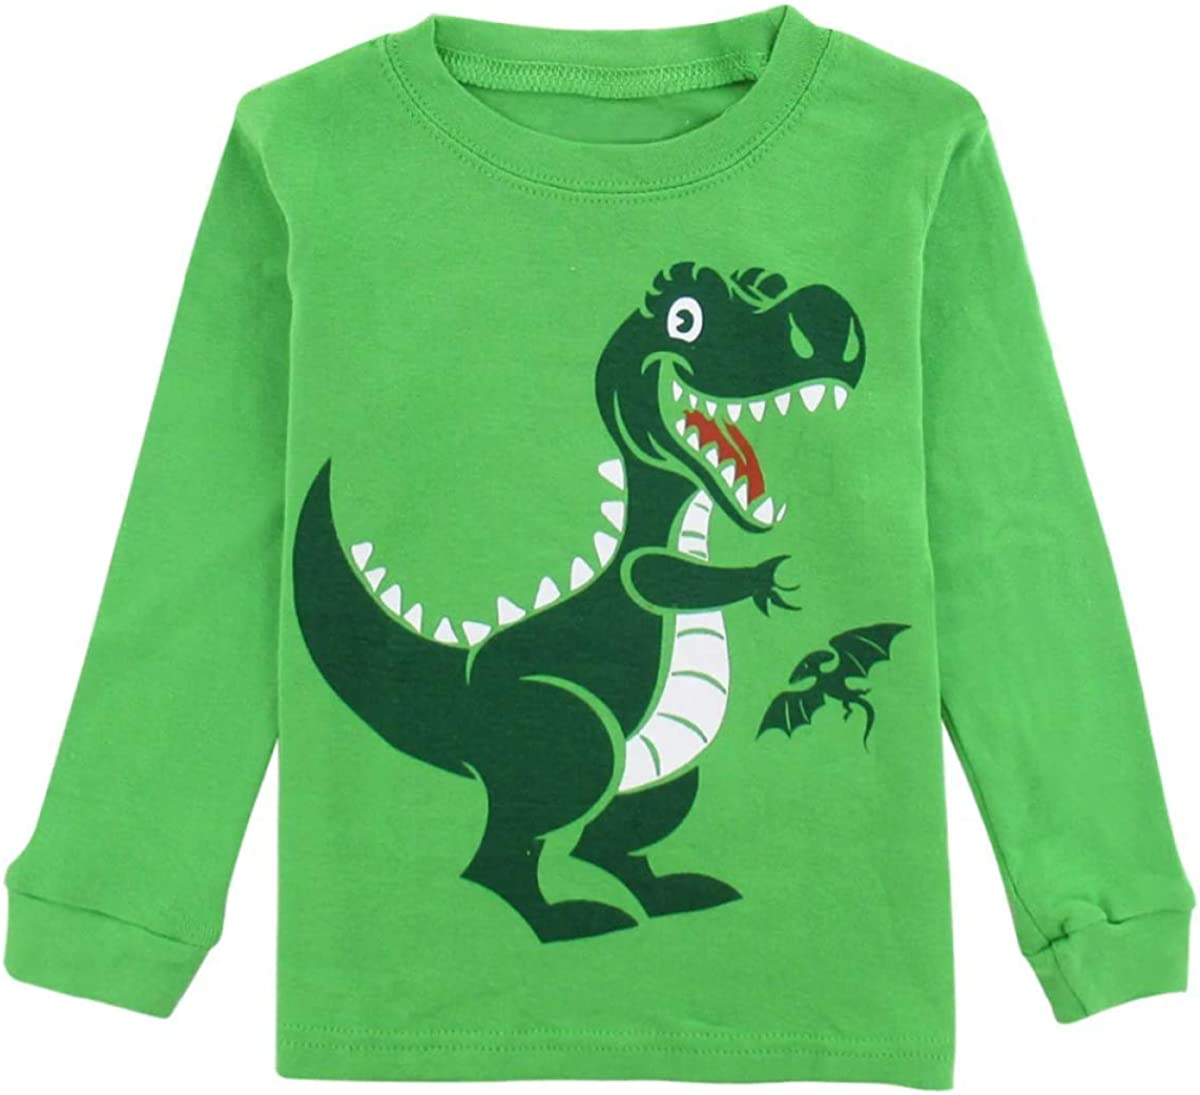 MIKI SHOP Kids Boy Winter Pyjamas Children Dinosaur Pijamas Cartoon Boy Pajamas Child Sleepwear Car Nightwear